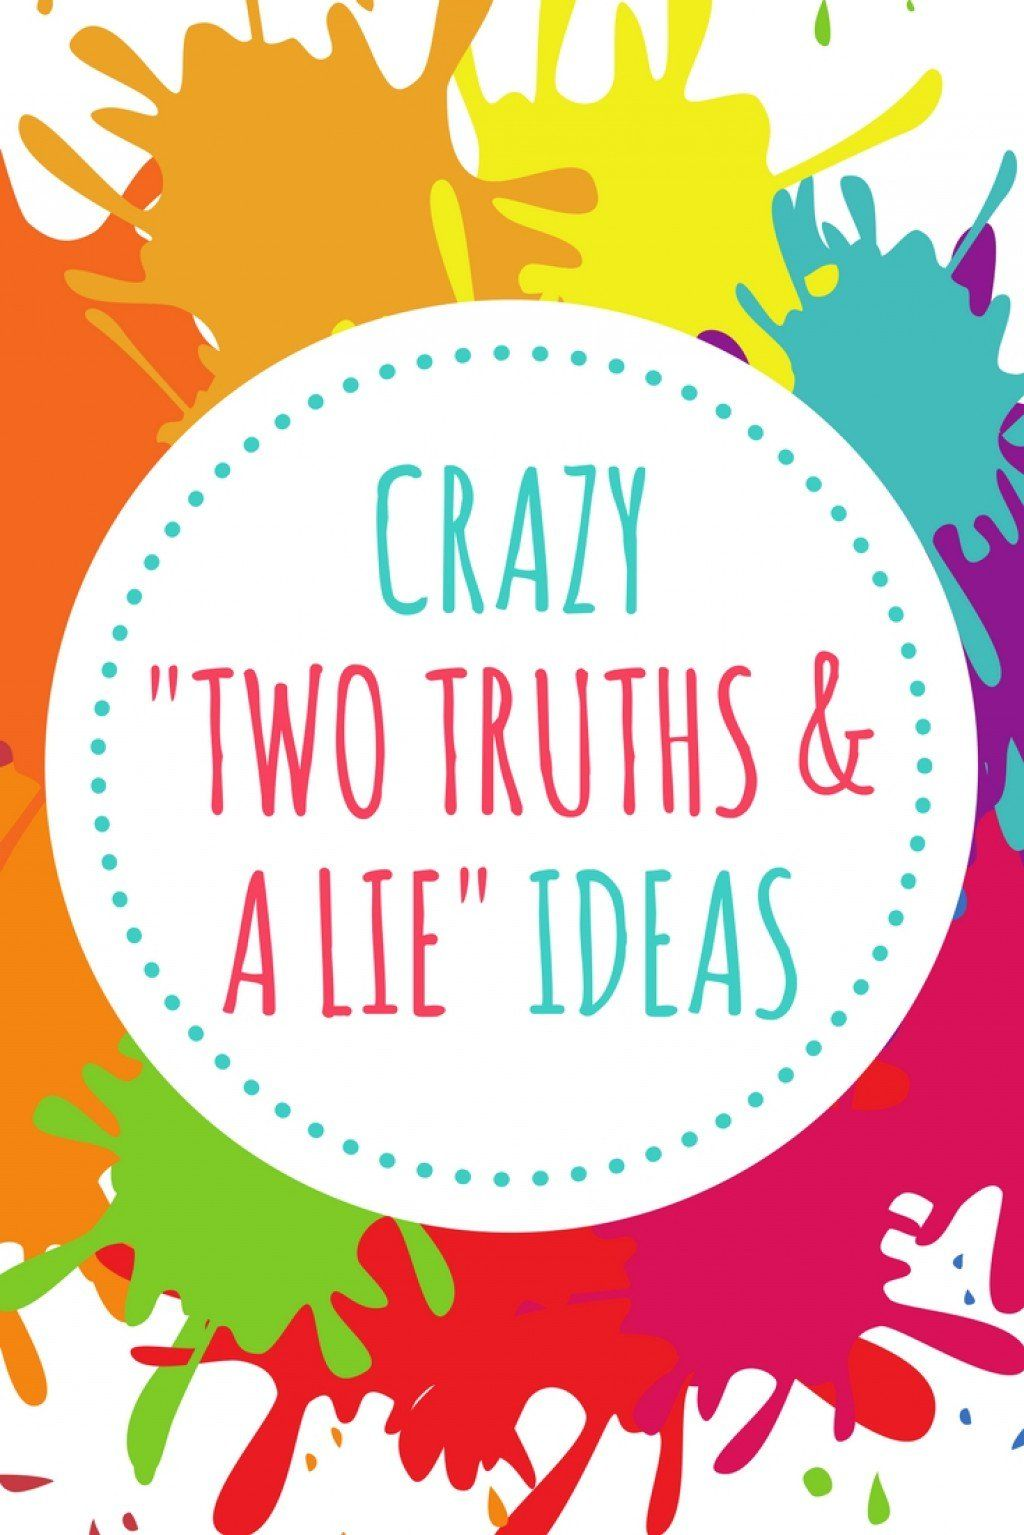 100 crazy two truths and a lie game ideas truth and